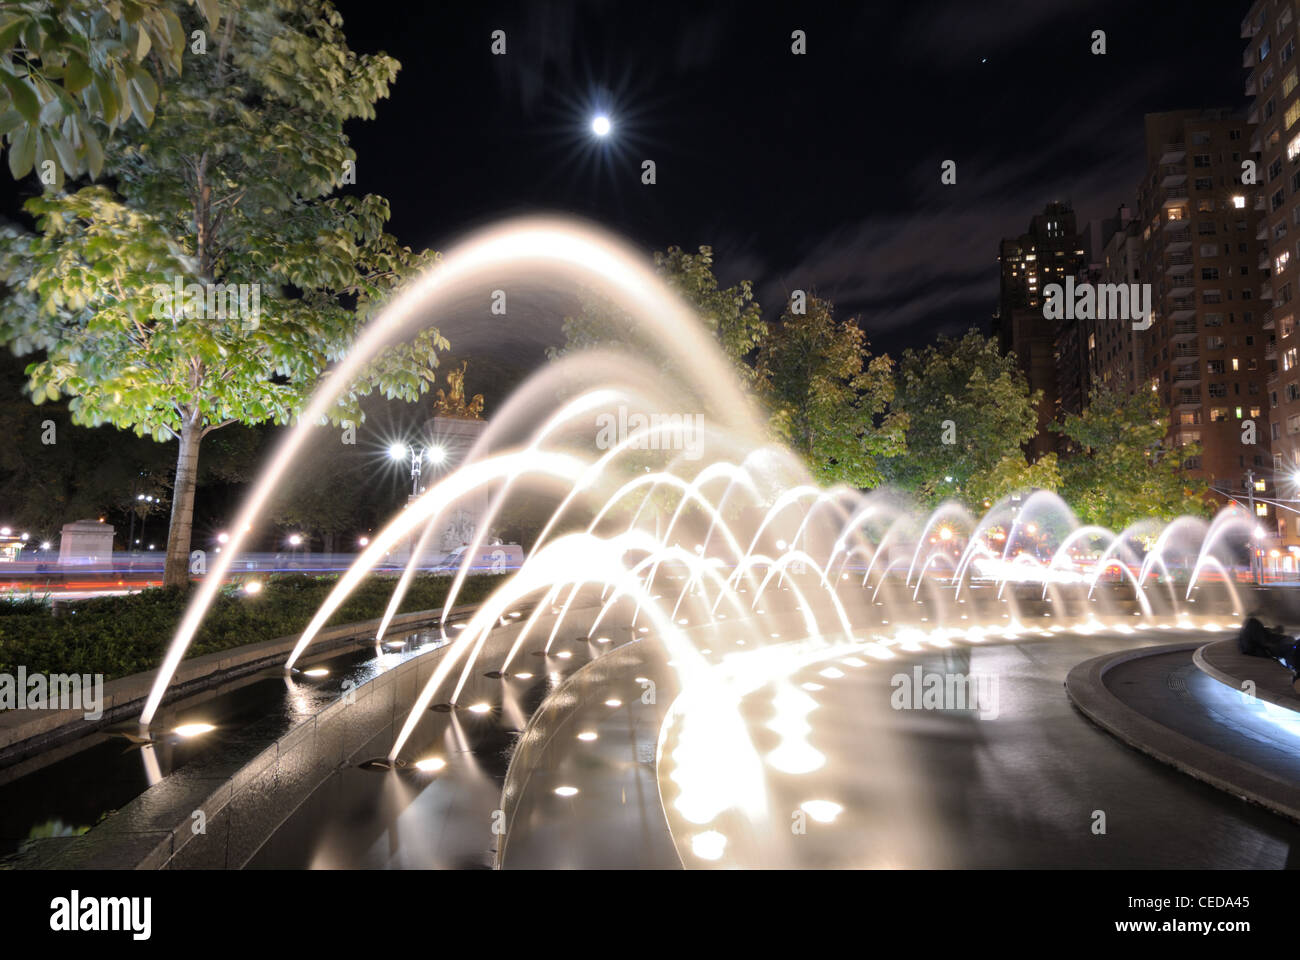 Spray of the fountains at Columbus Circle in New york City. - Stock Image